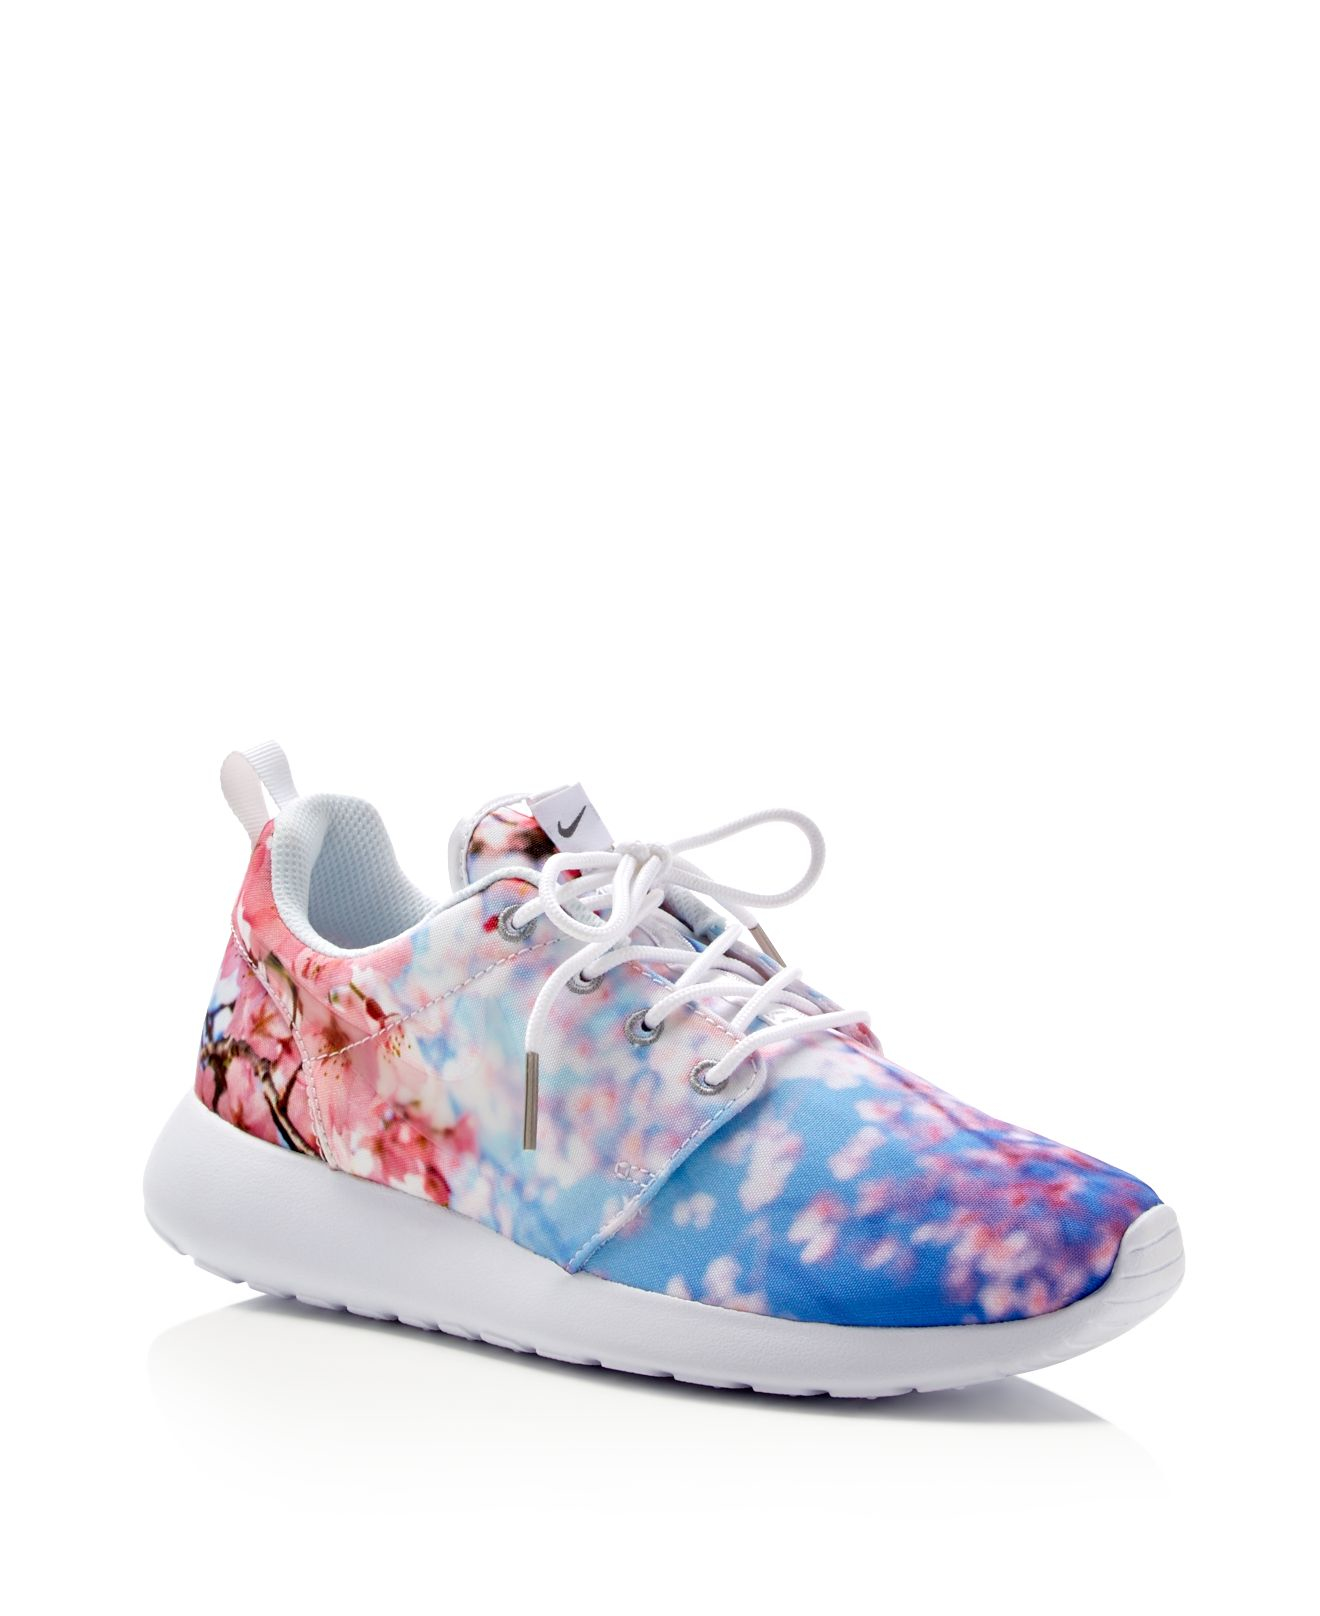 nike roshe one cherry blossom lace up sneakers in natural. Black Bedroom Furniture Sets. Home Design Ideas